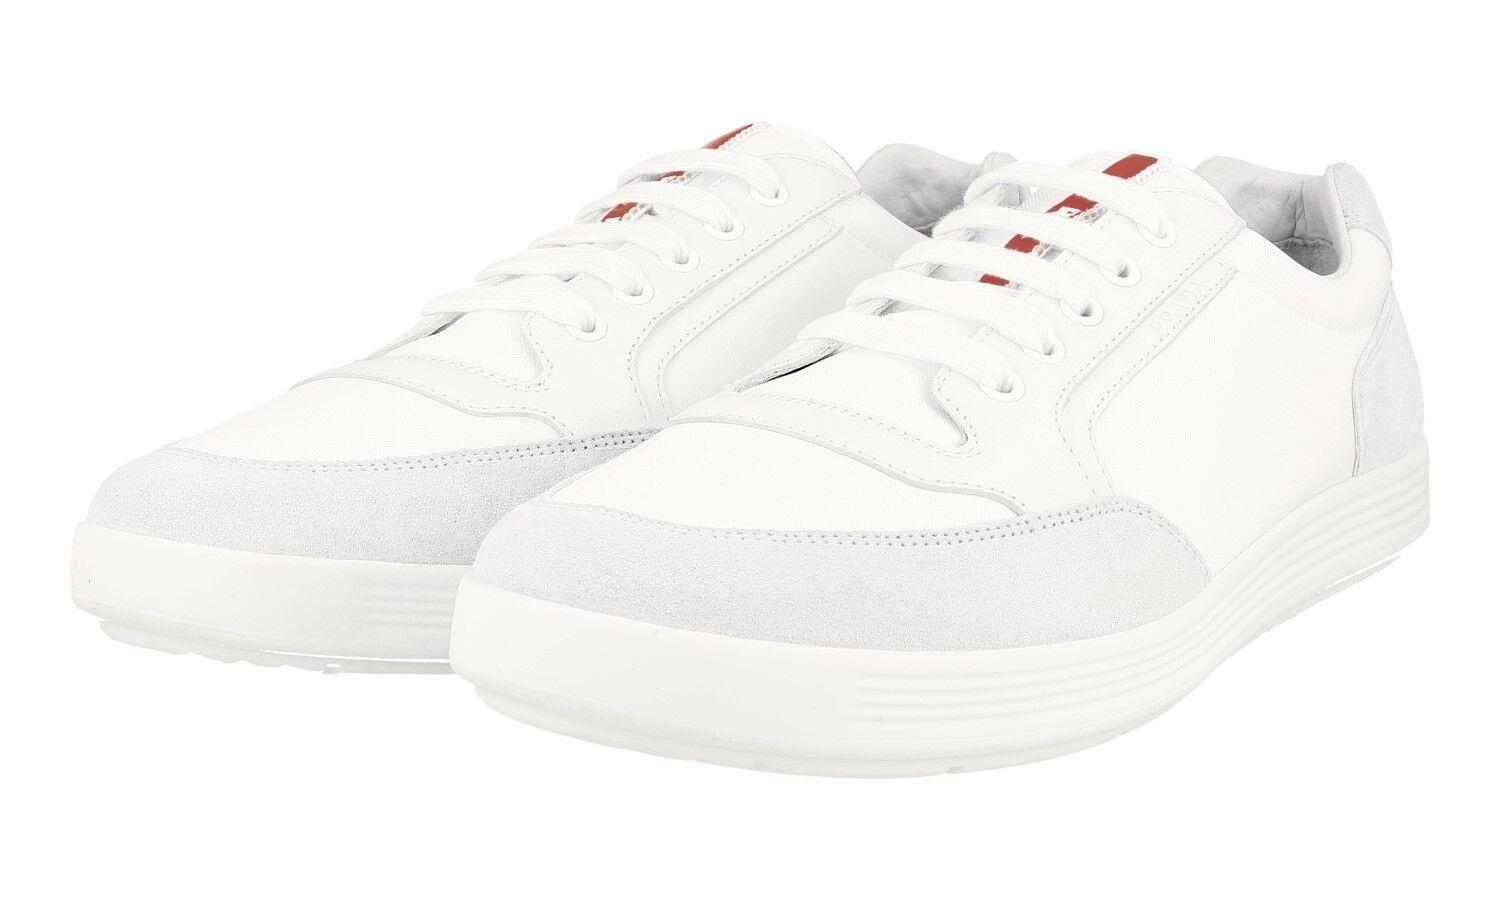 AUTHENTIC LUXURY PRADA SNEAKERS SHOES 4E2841 WHITE GREY NEW 11 45 45,5